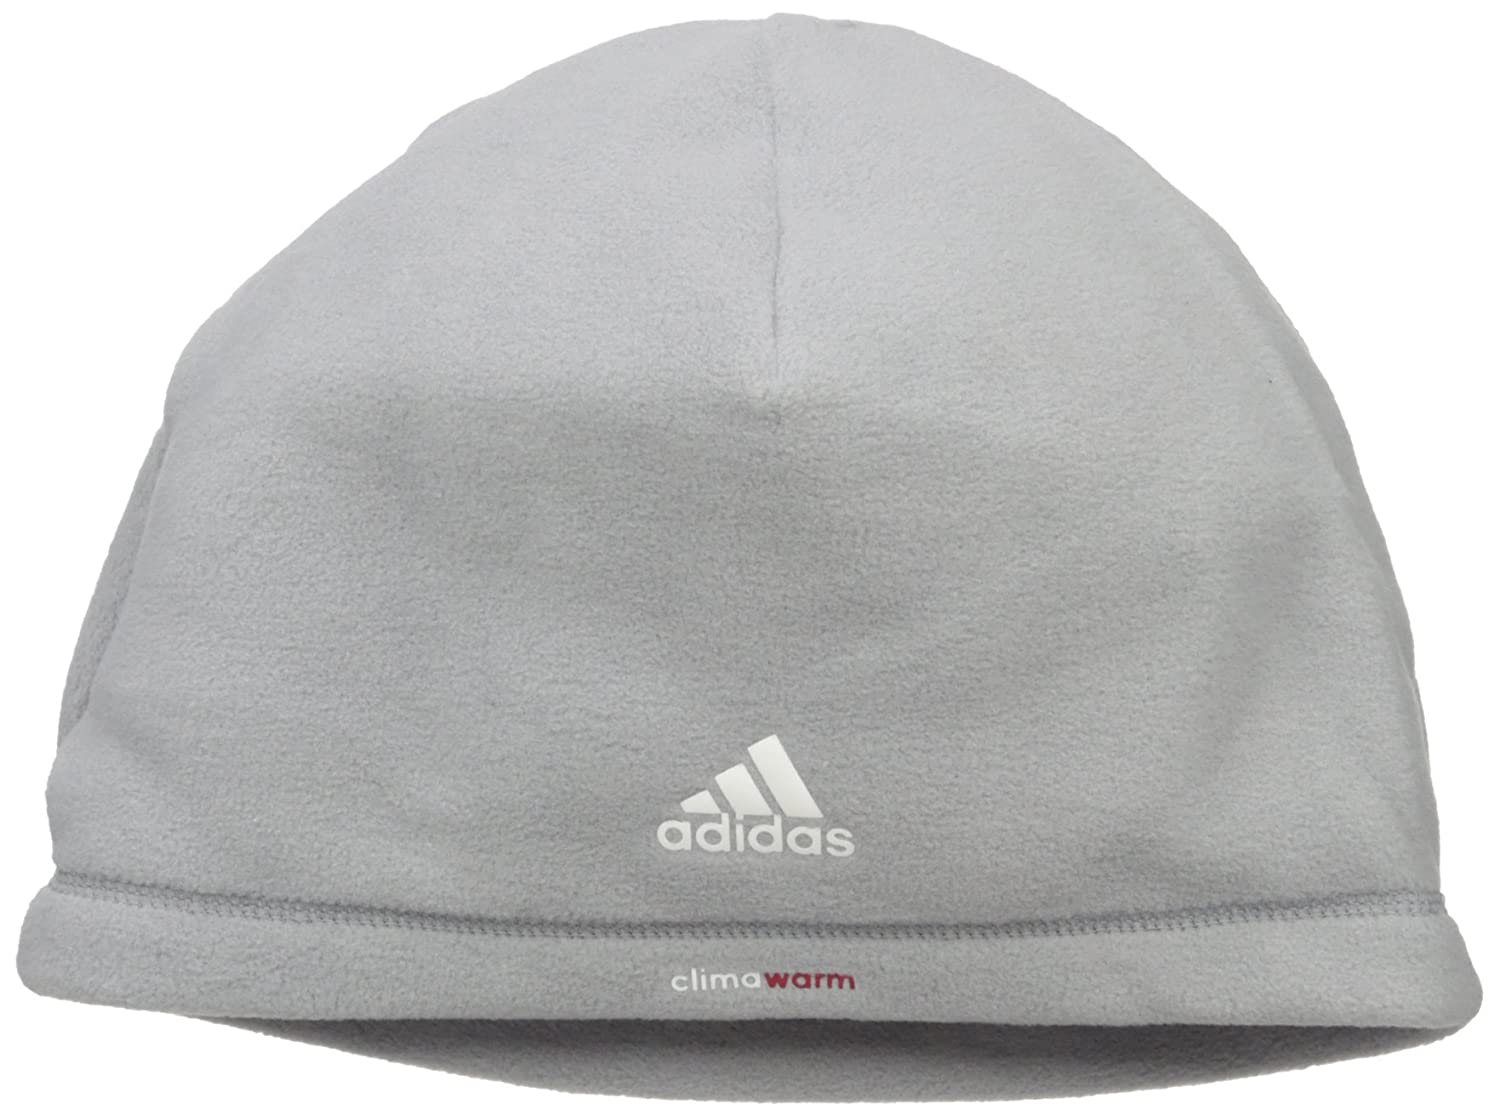 398ca69fd37 Amazon.com  adidas 2015 ClimaWarm Fleece Mens Golf Winter Hat Beanie   Sports   Outdoors